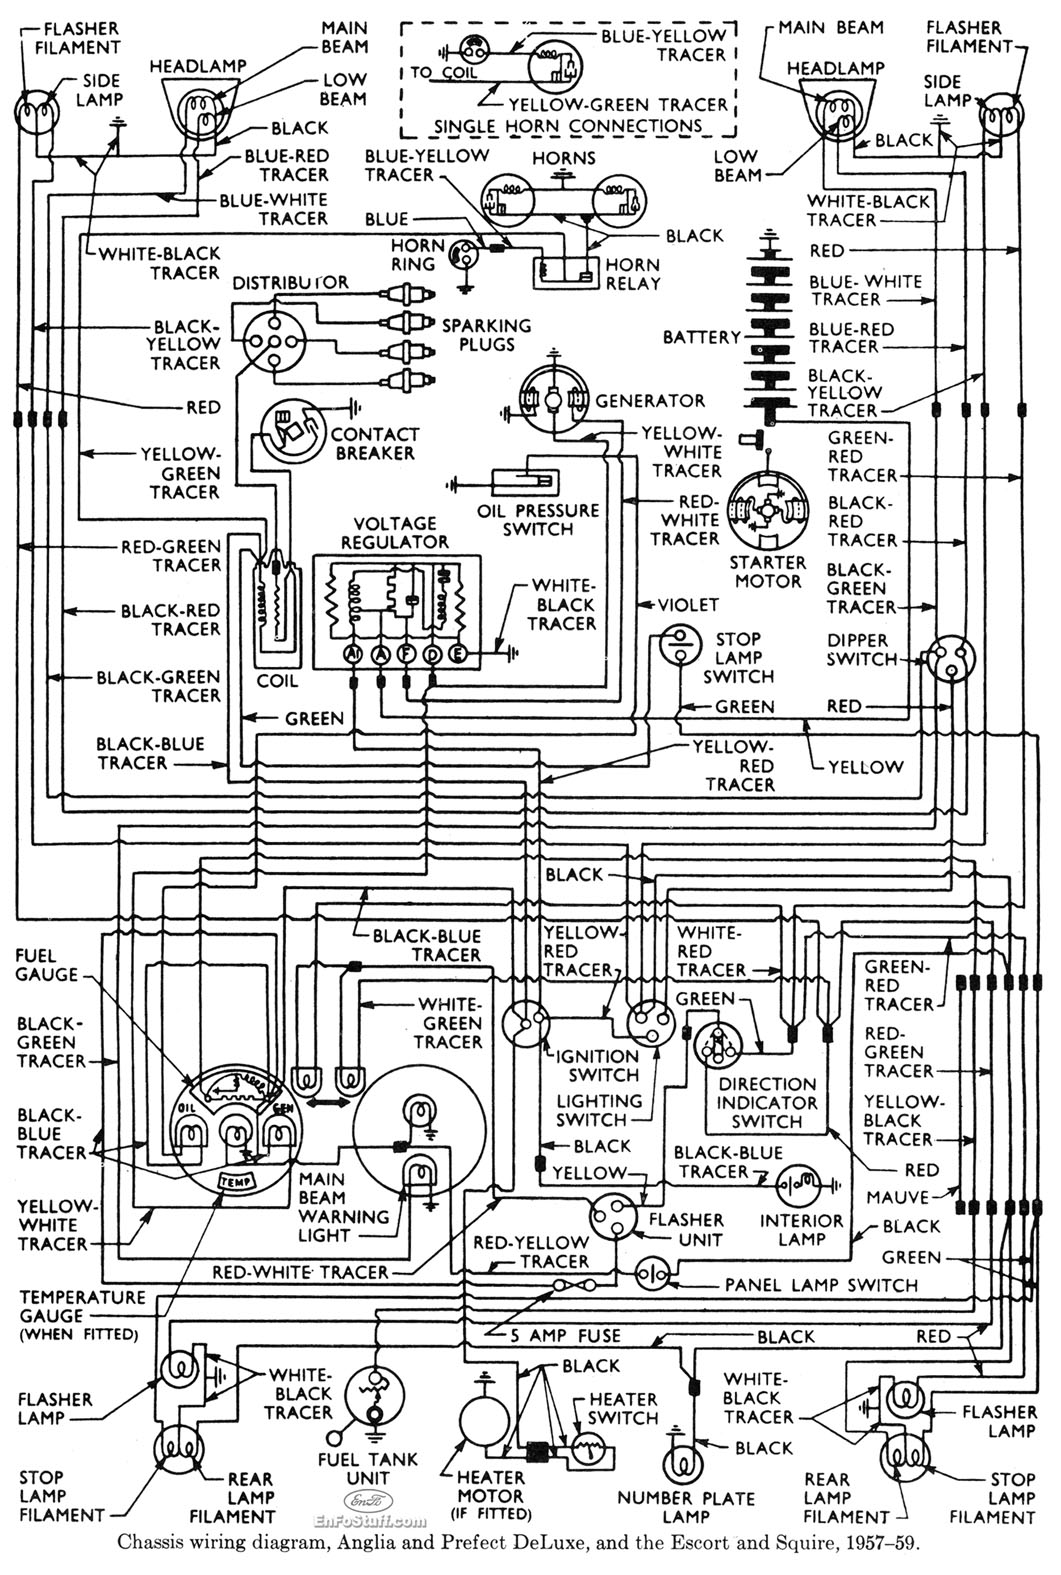 hight resolution of ford anglia prefect escort squire 1957 59 wiring diagram 1955 electrical wiring schematic 1988 columbia par car